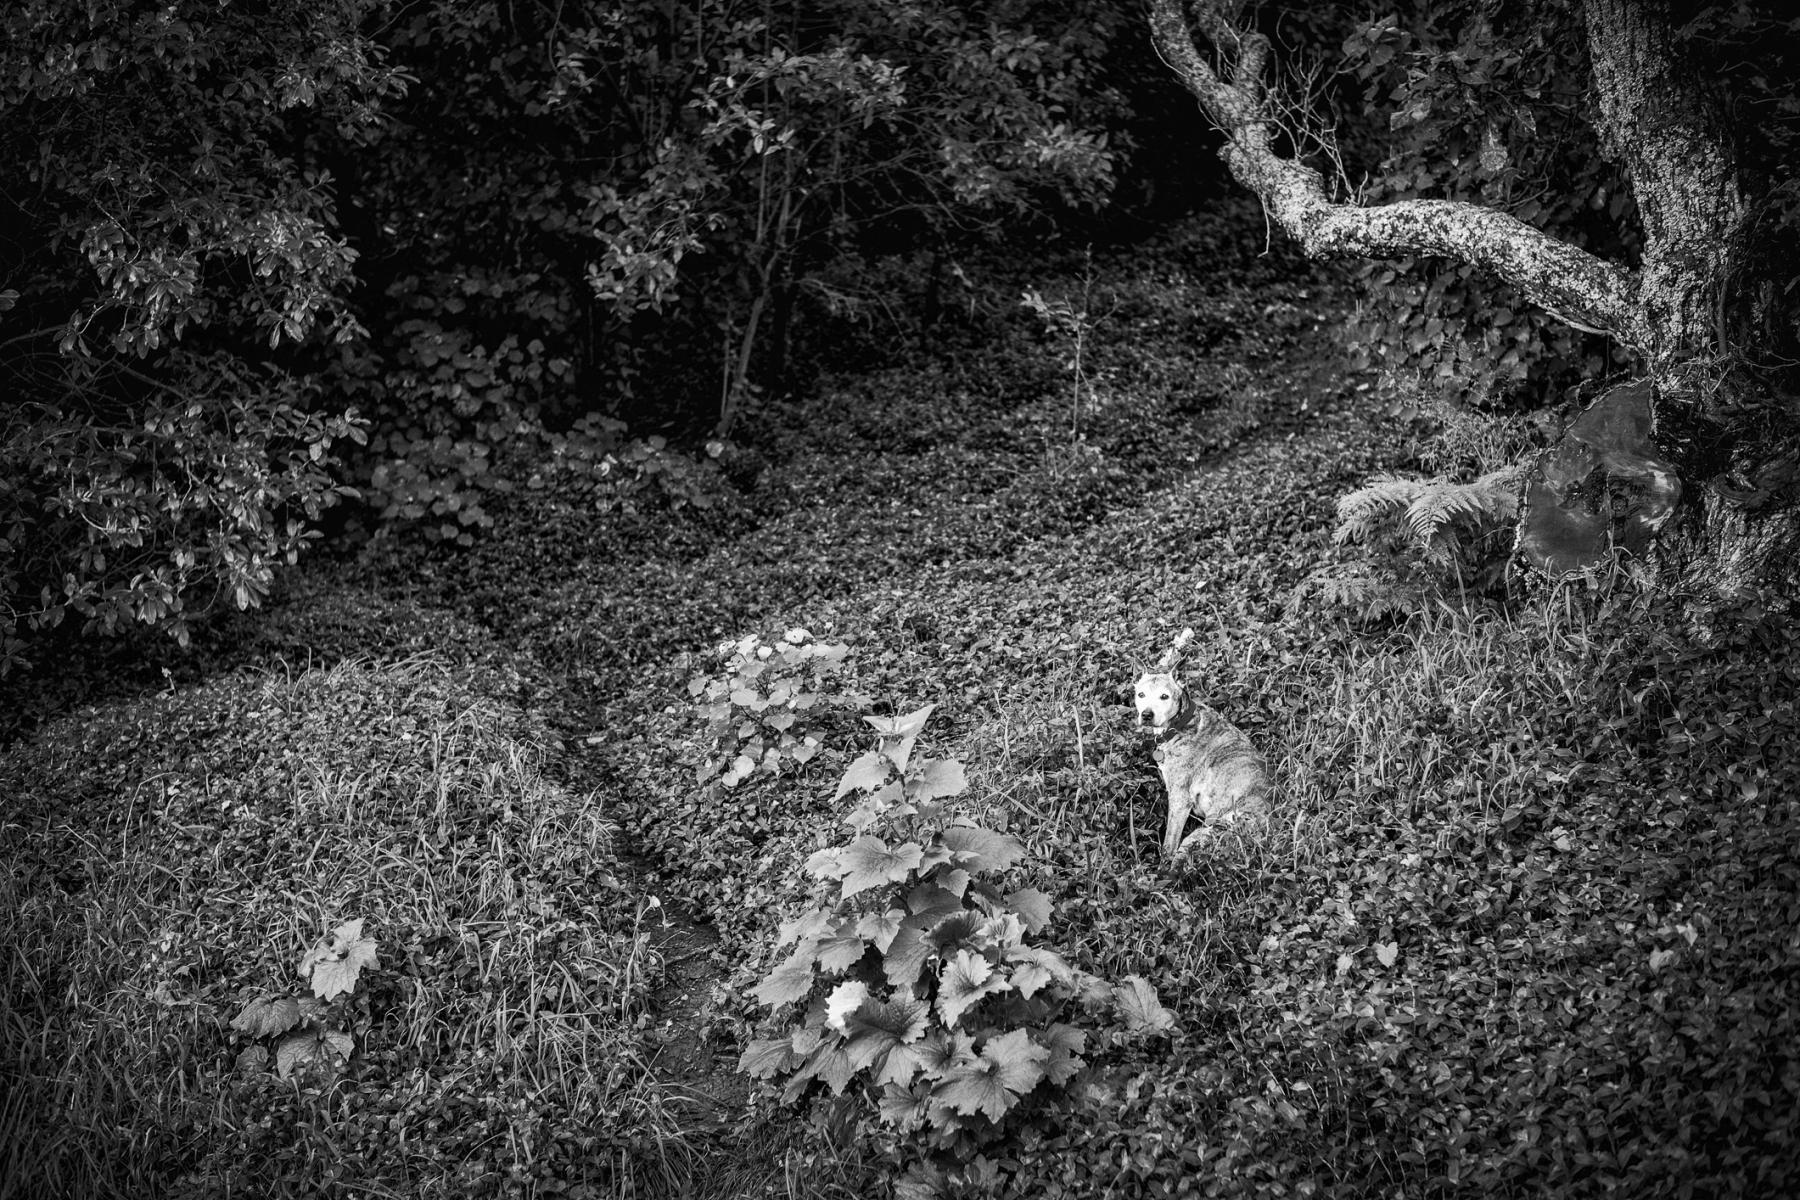 Dog in Forest, Family of Dog.  Apologies to Mr. Bullock : monochrom : TIMOTHY FLOYD PHOTOGRAPHER, NATURE PHOTOGRAPHY, PHOTO ESSAYS, PHOTOJOURNALISM